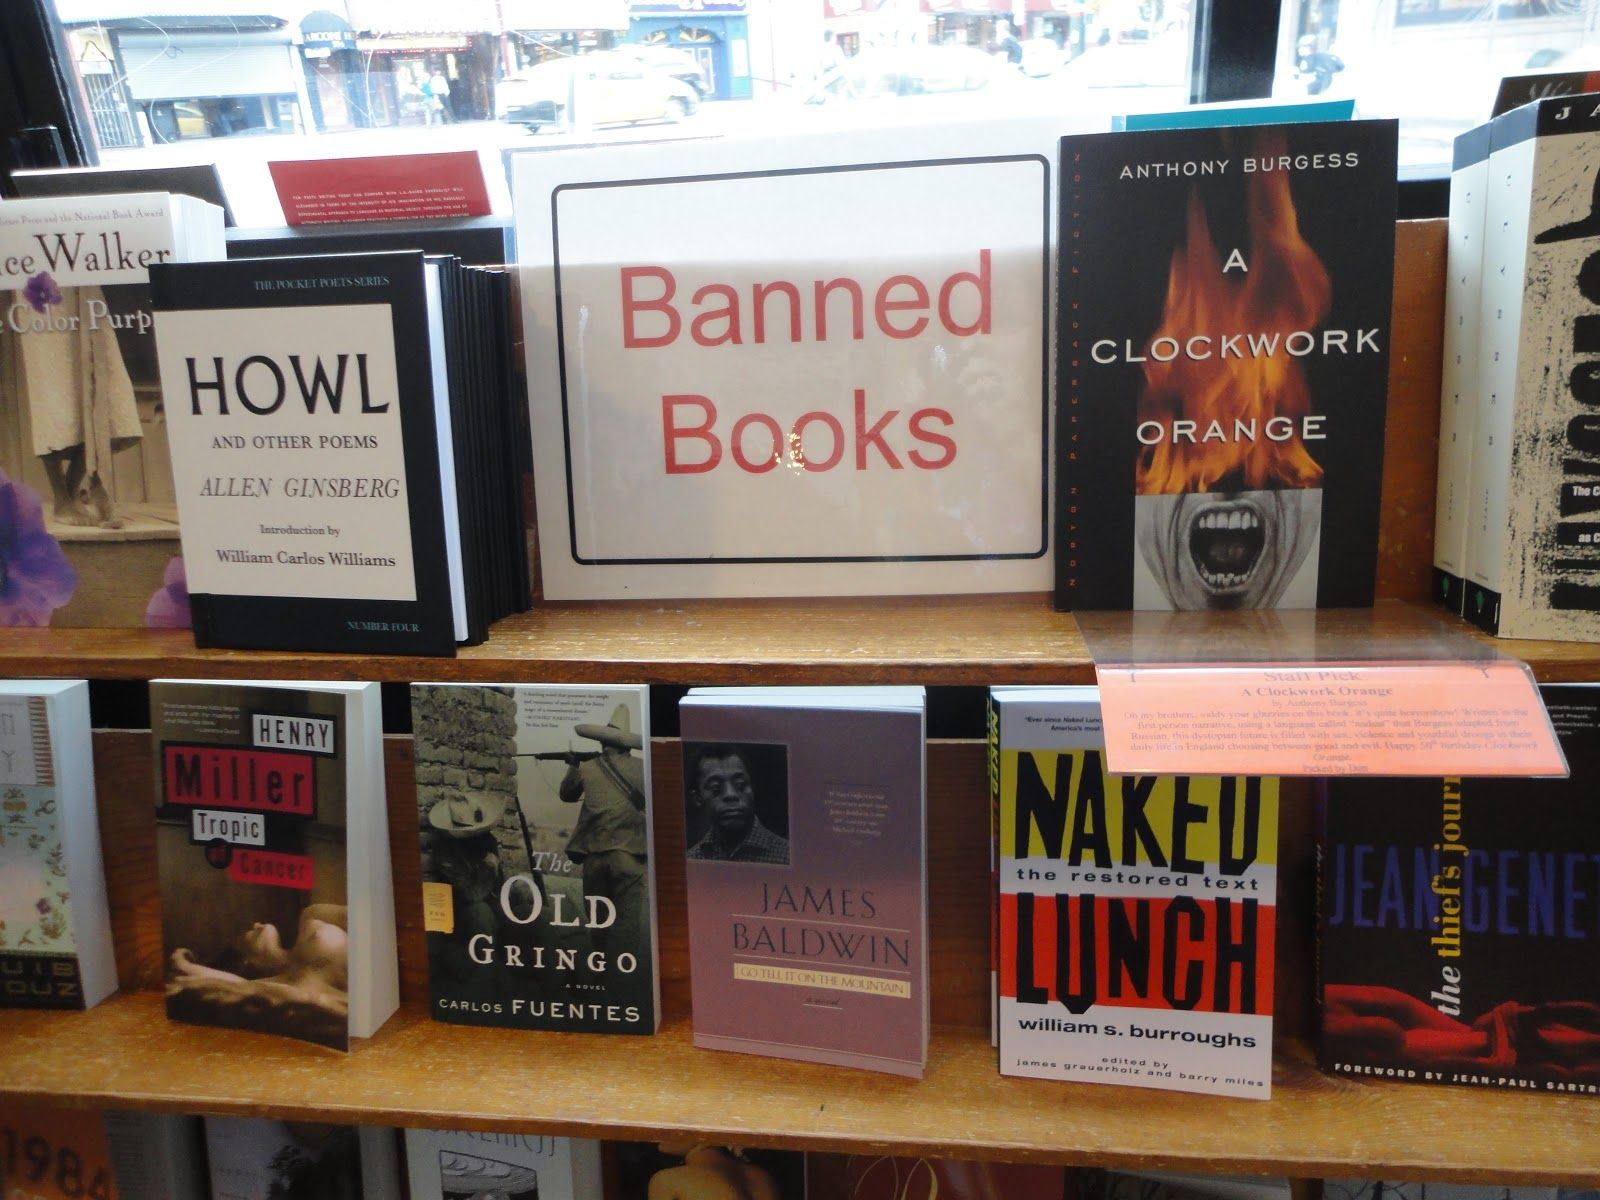 A display of notoriously controversial books for rebellious